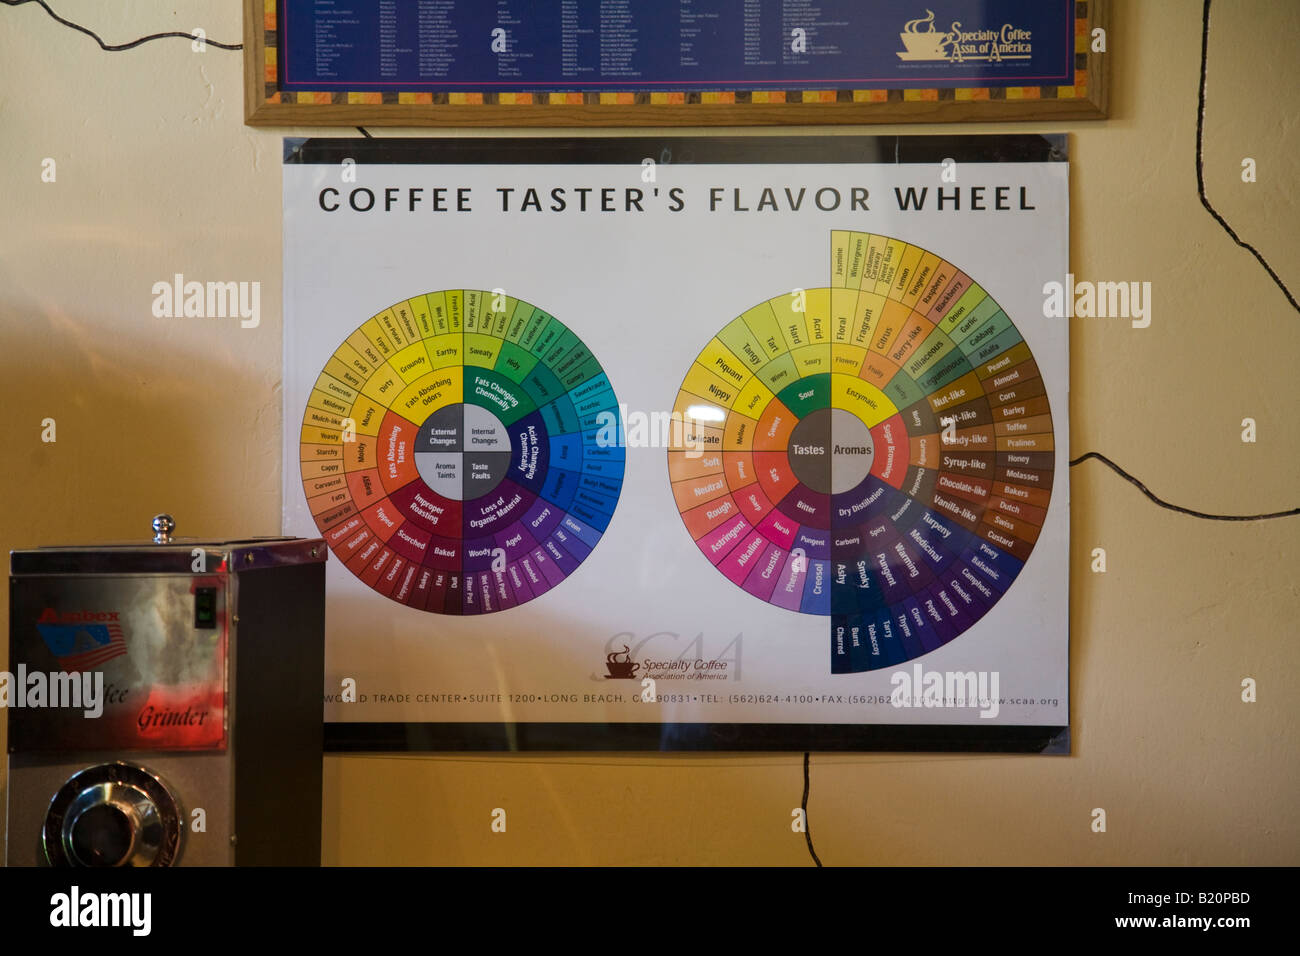 ILLINOIS Riverwoods Tasting wheel for sampling coffee taster flavor wheel with colors and descriptive words - Stock Image